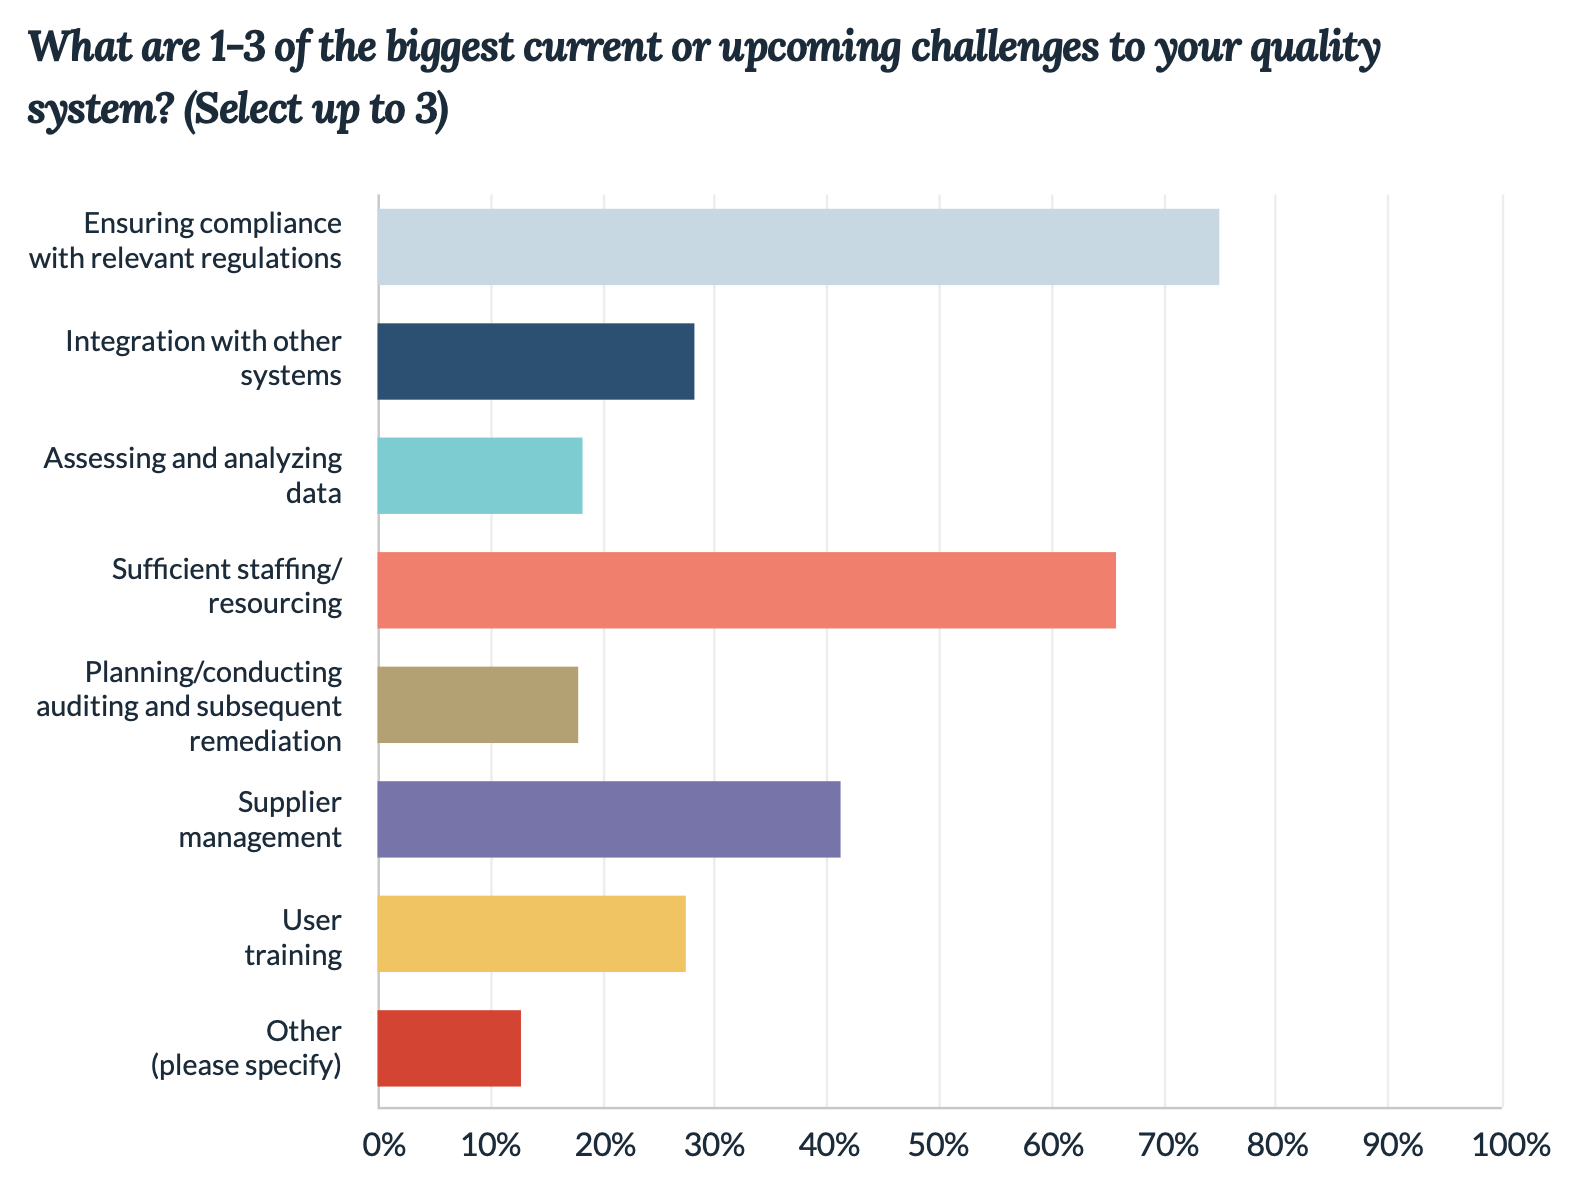 Life Science Quality System Challenges 2020